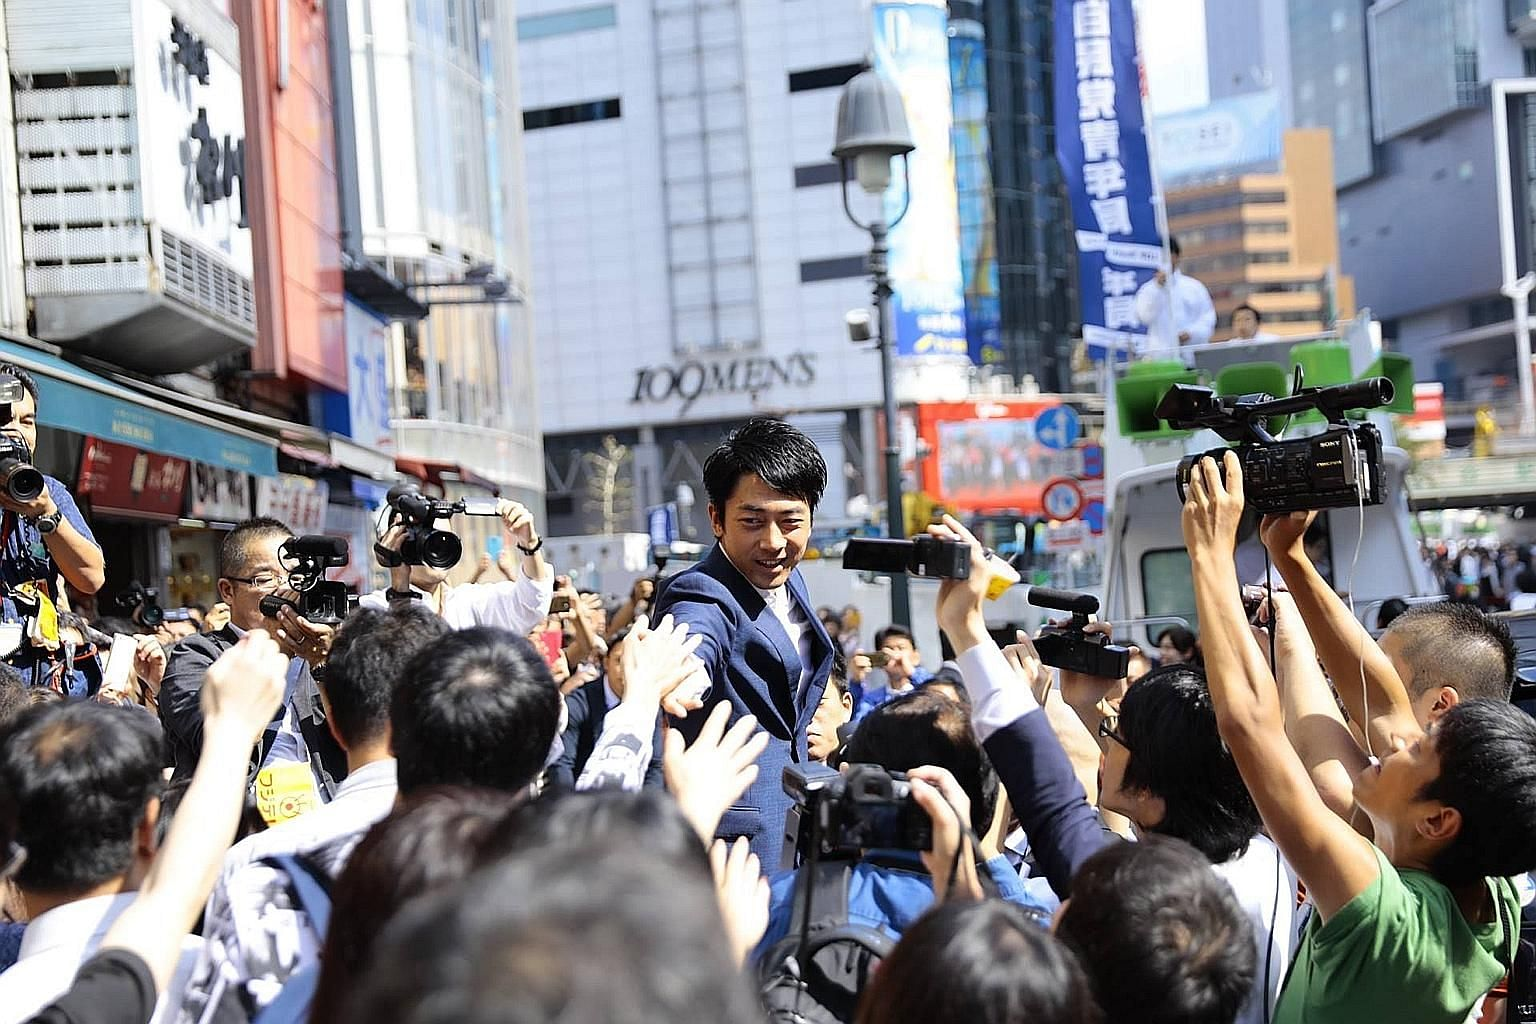 Political blue blood Shinjiro Koizumi of the ruling Liberal Democratic Party speaking in Shibuya in Tokyo on Monday. He has also spoken in Hokkaido, the disaster-stricken Tohoku region, and yesterday, gave four stump speeches in Kyoto in central Japa